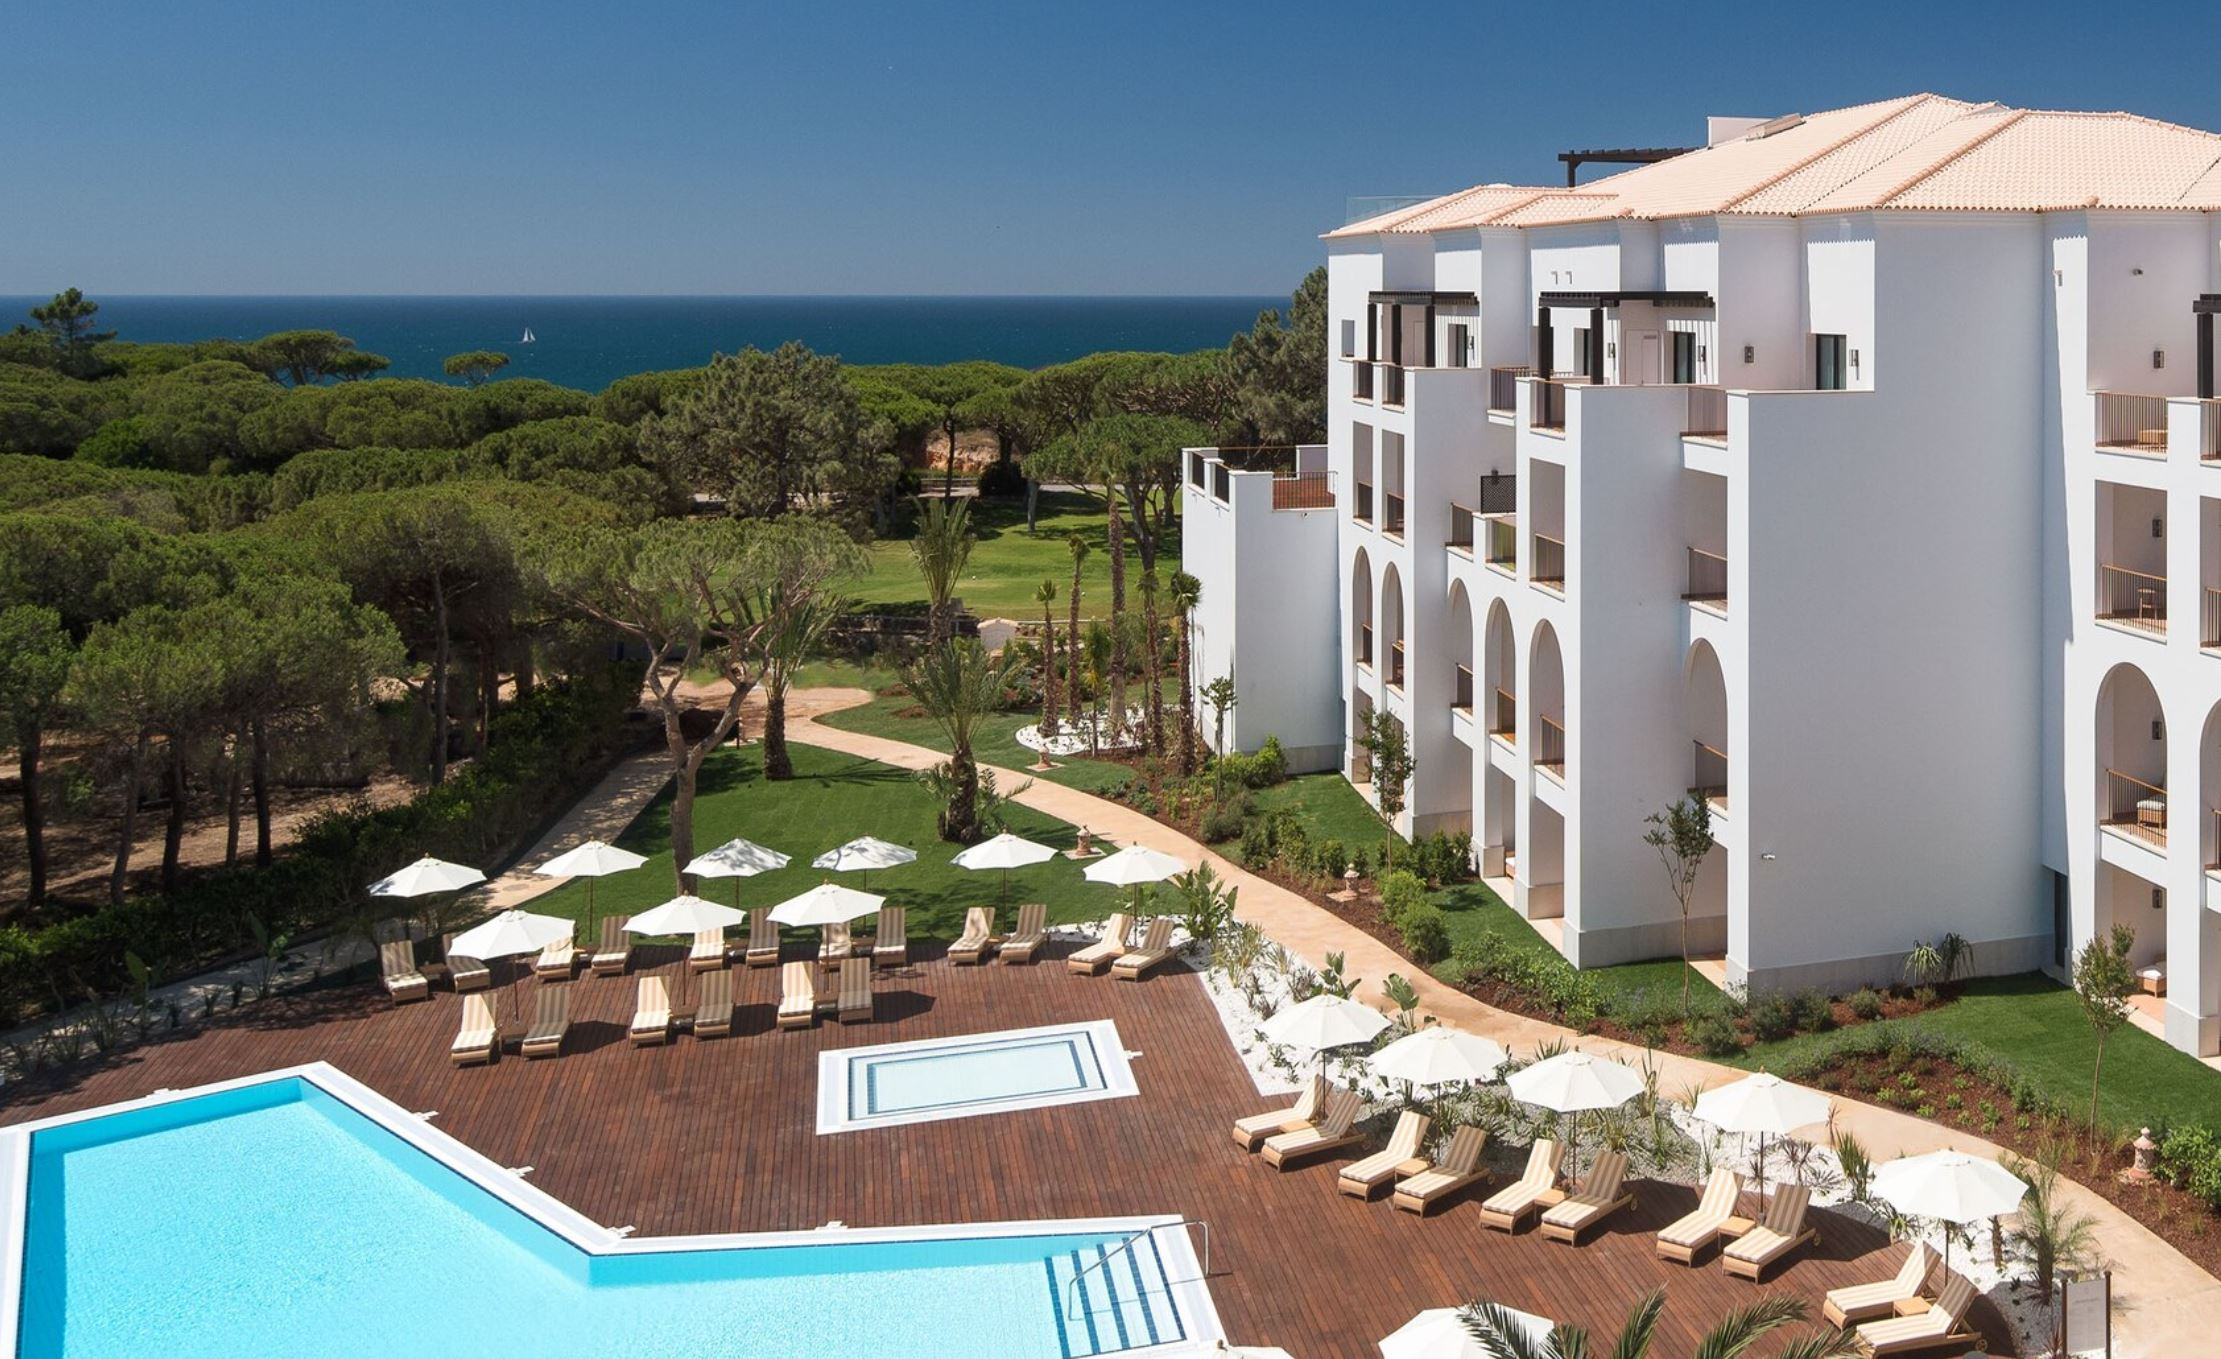 Pine Cliffs Resort - Top Portugal Resorts and Best Places to Stay in Portugal